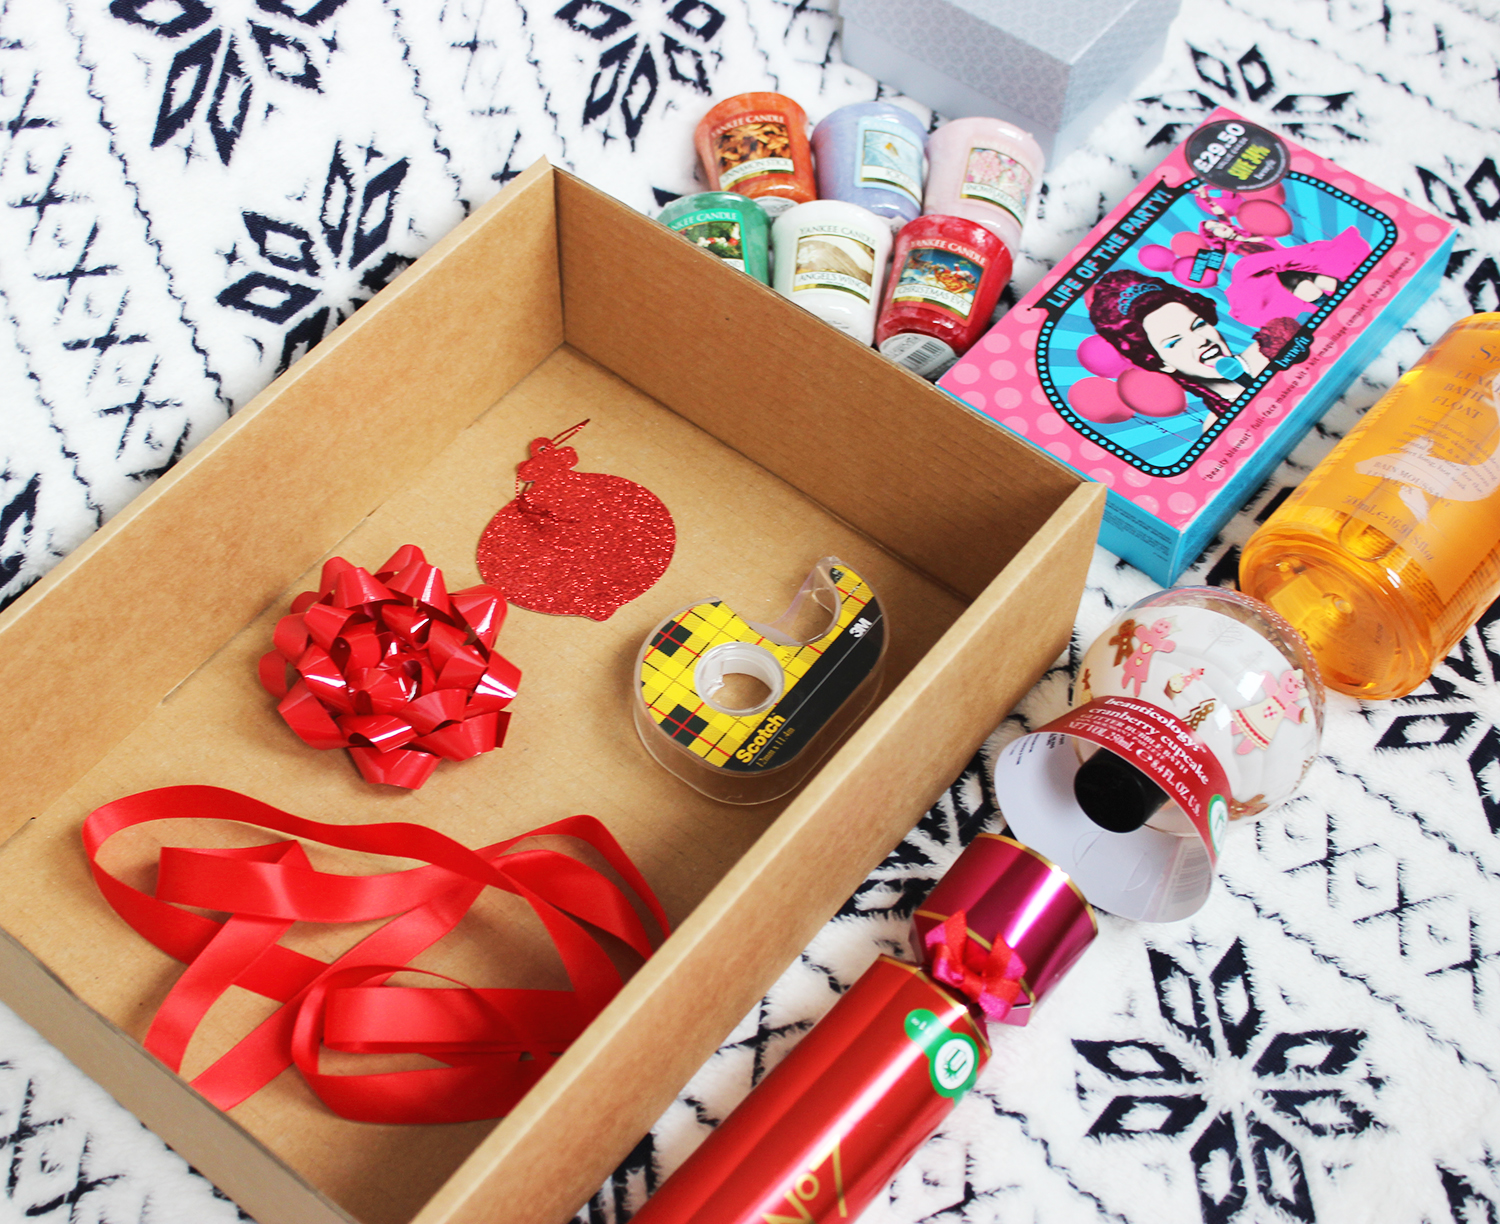 How to make a diy beauty hamper with a little help from Boots